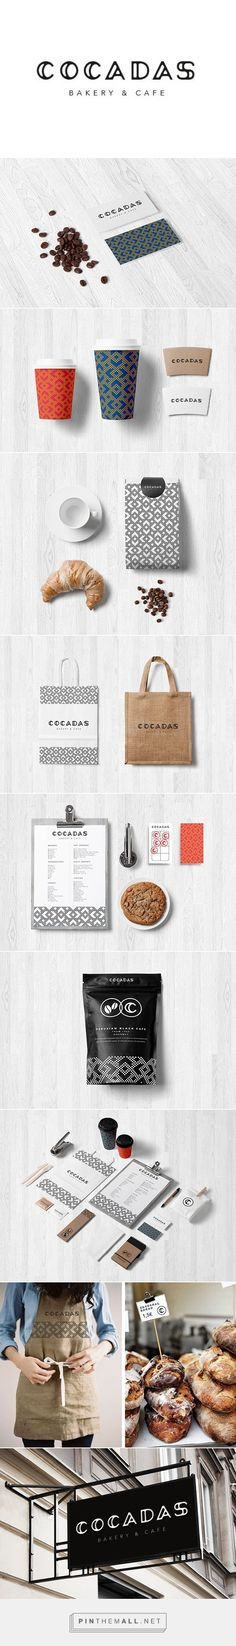 Packaging Pick Of The Day C O C A D A S - Bakery  Cafe on Behance by Laia Gubern curated by Packaging Diva PD. Tasty identity packaging branding. Who wants to go : )